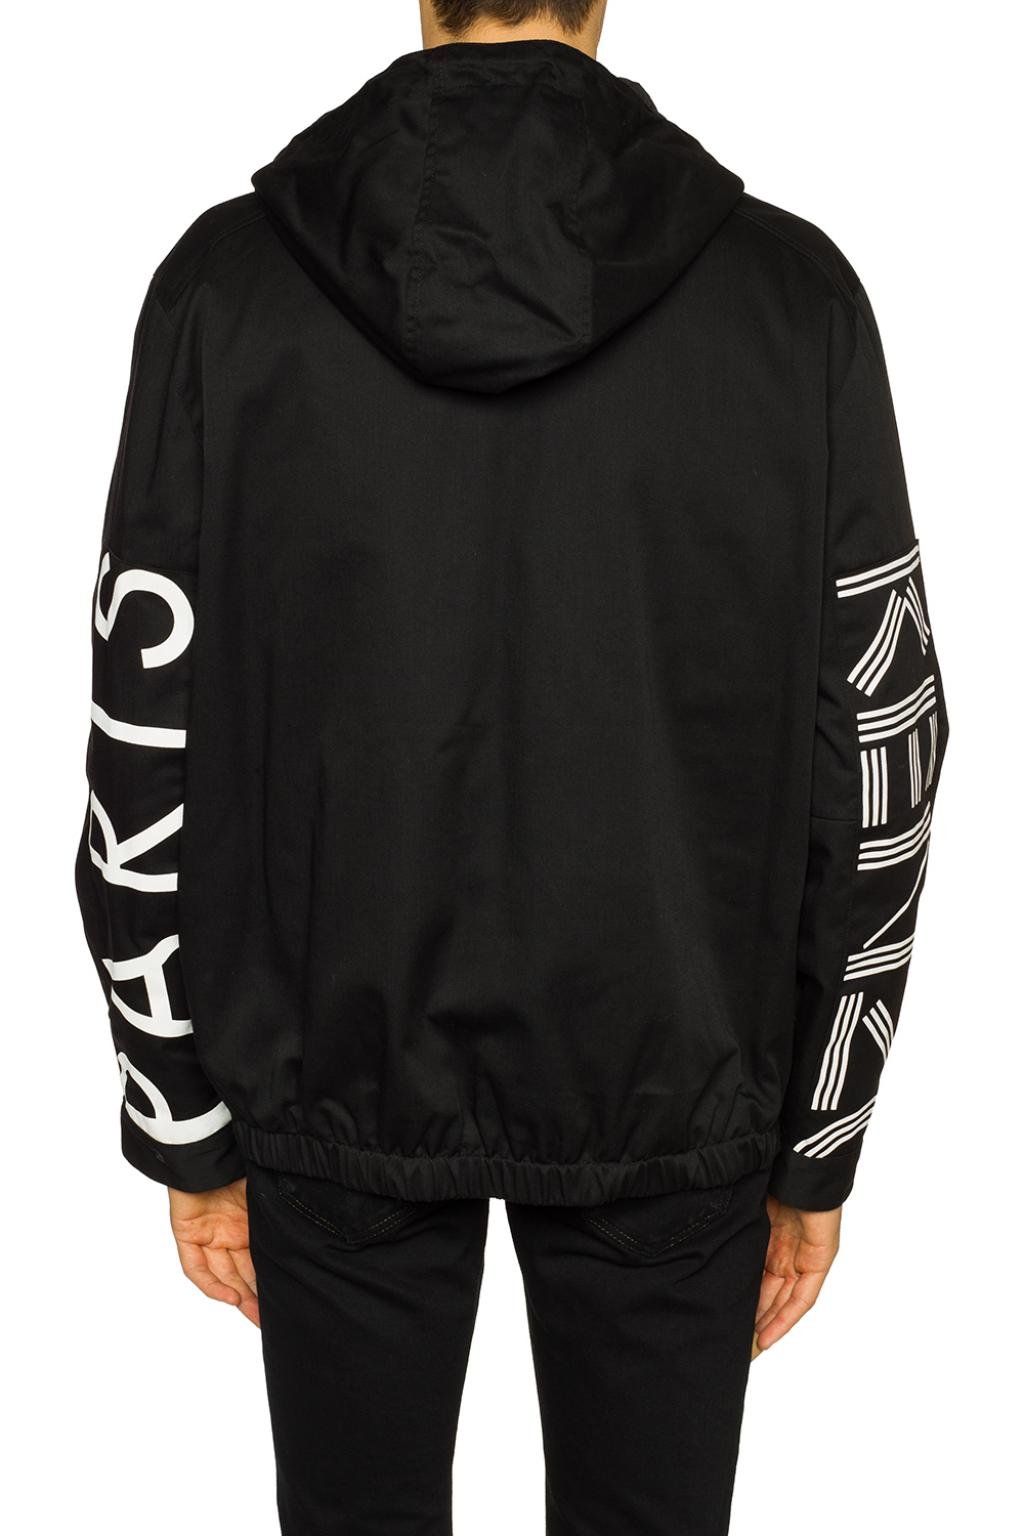 Kenzo Jacket with logo at sleeves